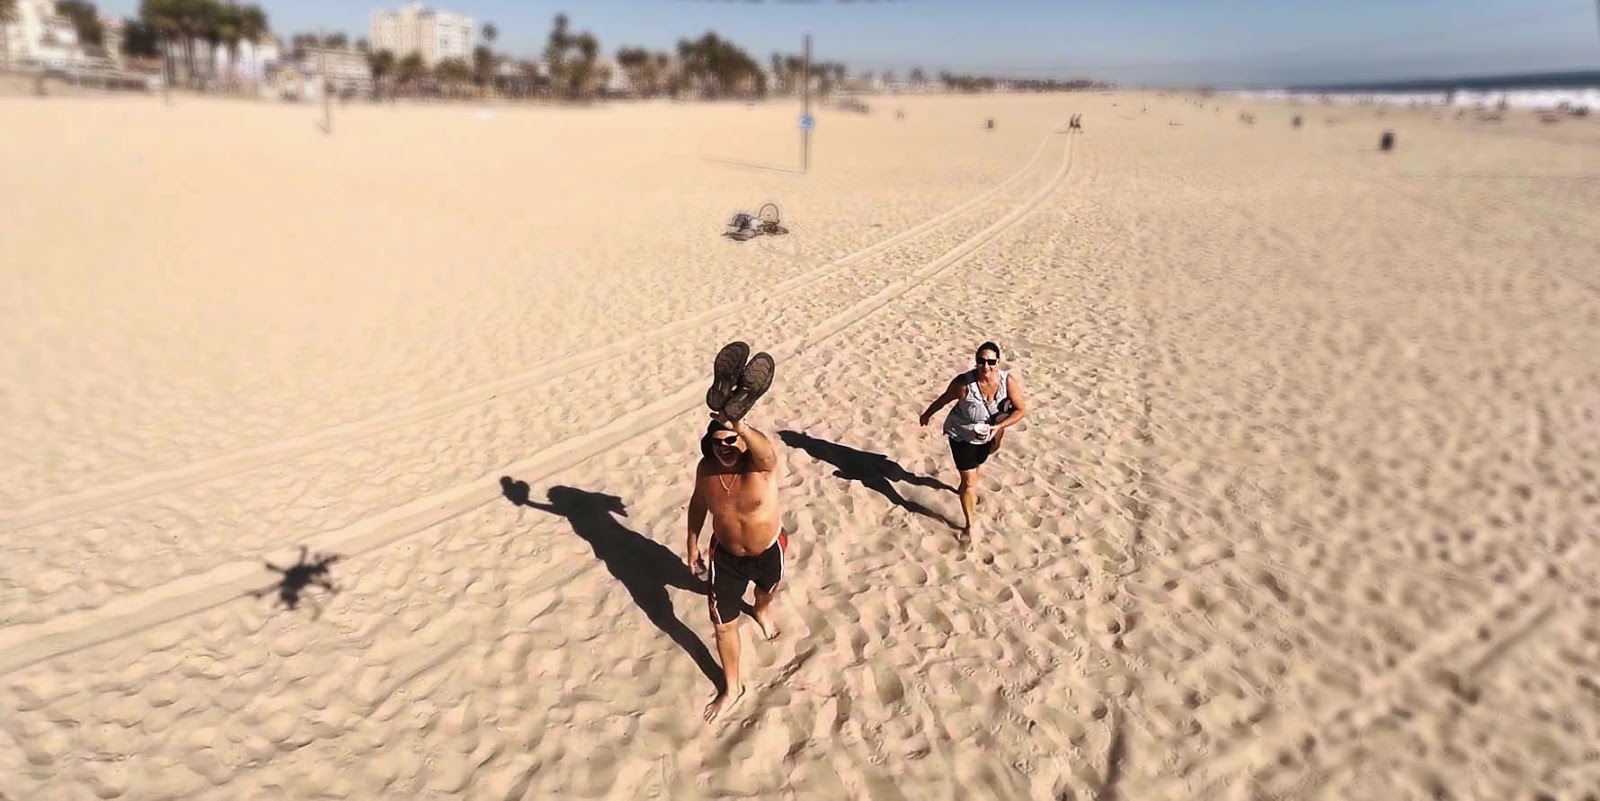 Sunbather On California Beach Takes Down Drone By Throwing T Shirt At It Is Jailed For Vandalism